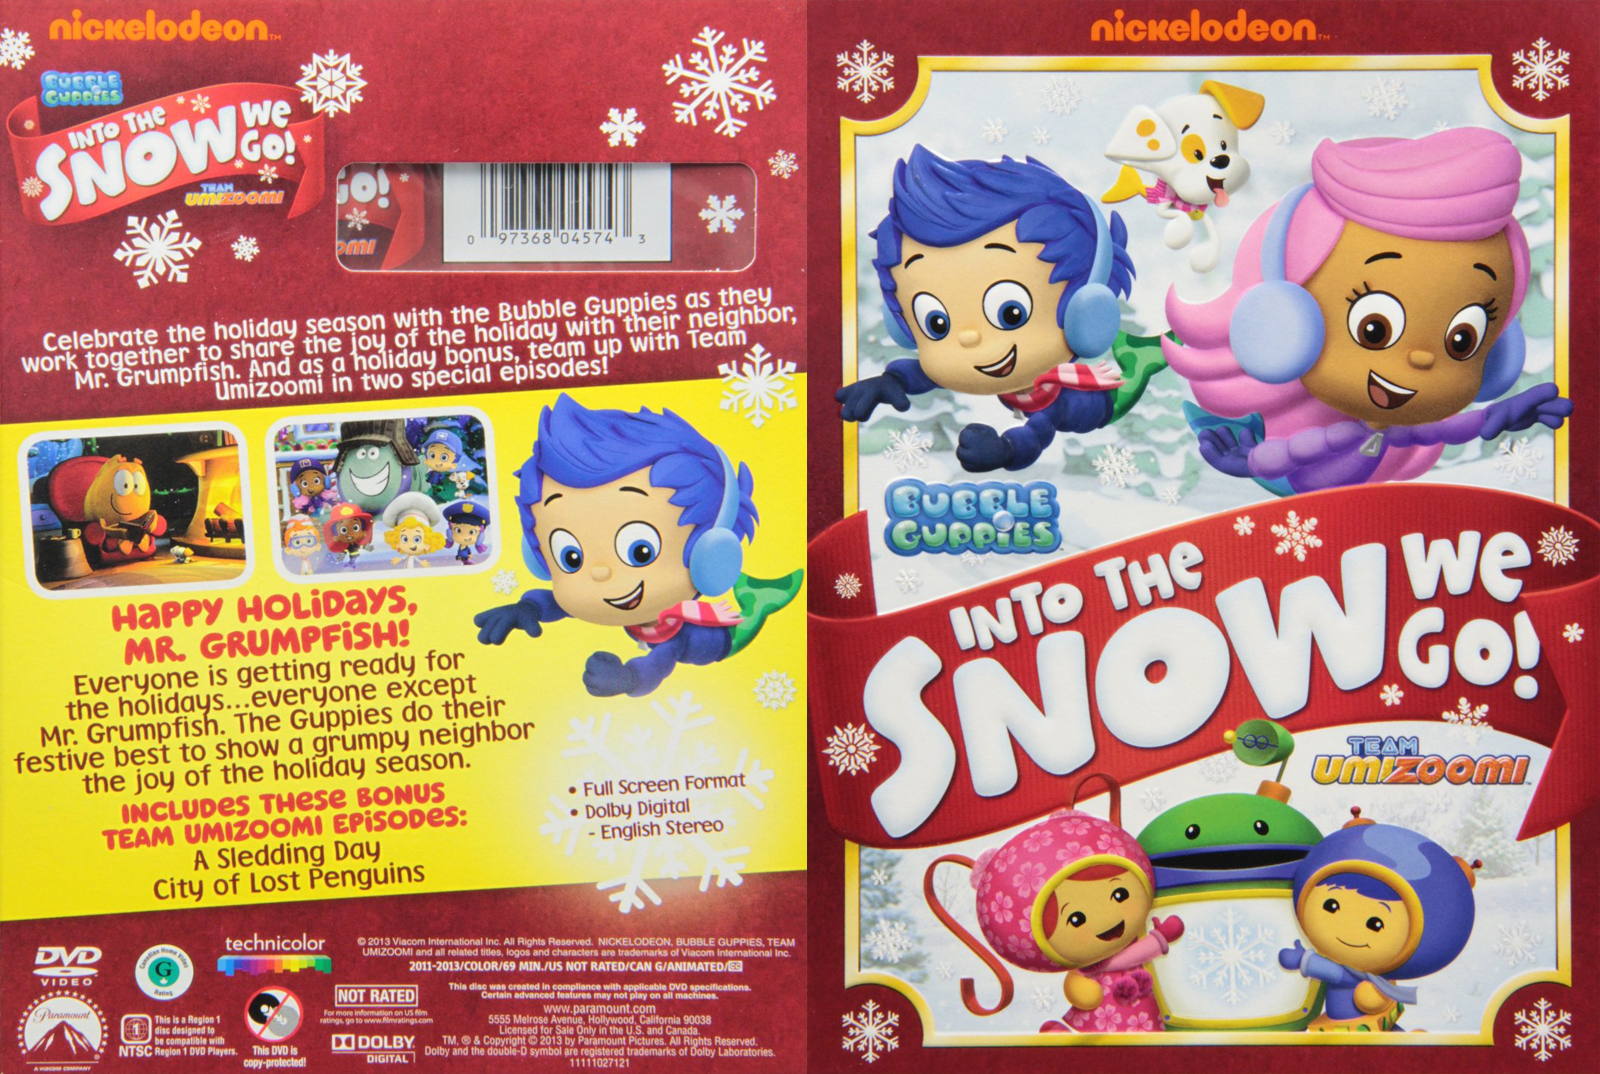 Bubble Guppies Brincando Na Neve DVD-R Bubble 2BGuppies 2BBrincando 2BNa 2BNeve 2BDVD 2B  2BXANDAODOWNLOAD